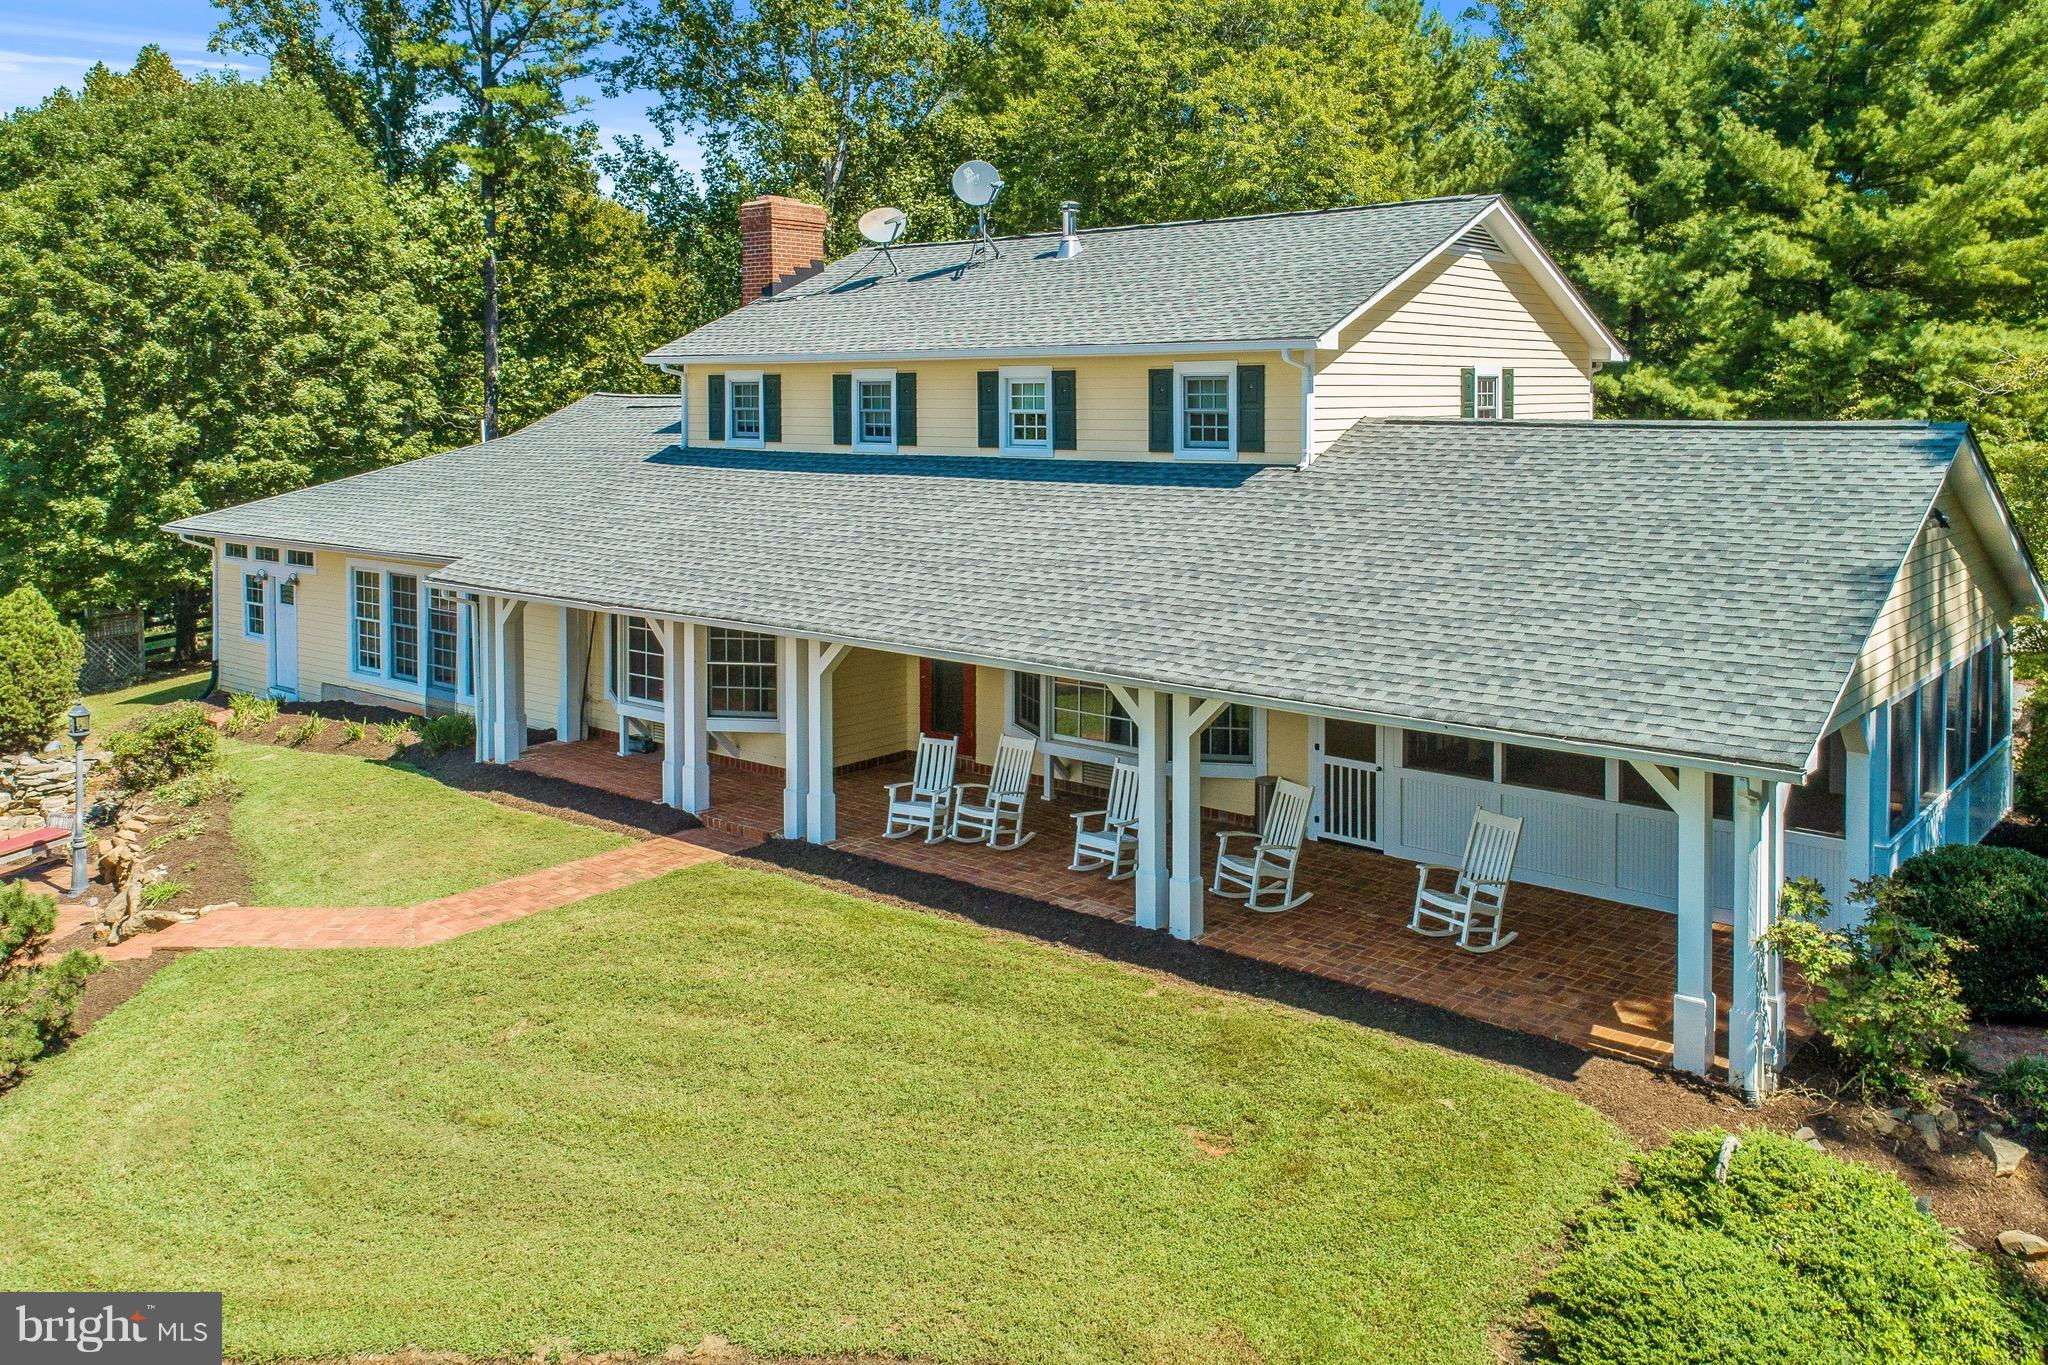 7728 HAZELAND LANE, BOSTON, VA 22713